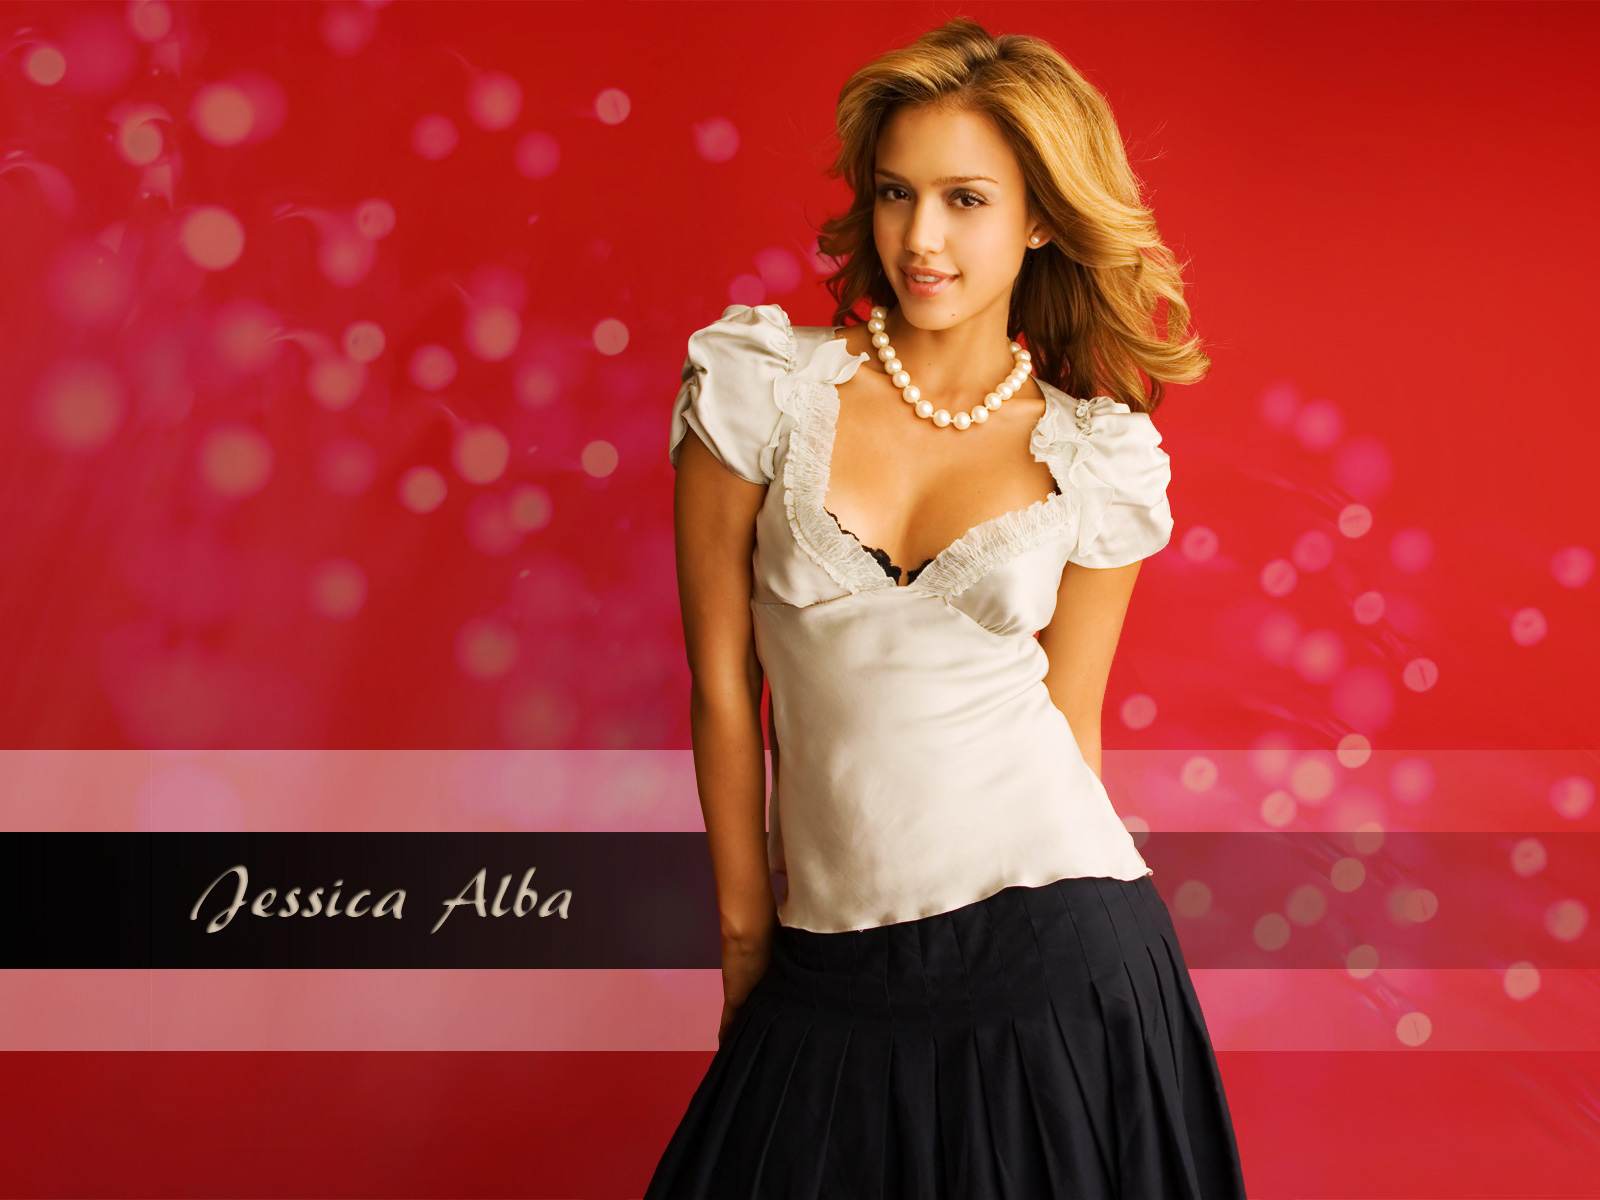 Jessica Alba Latest 2010 wallpaper